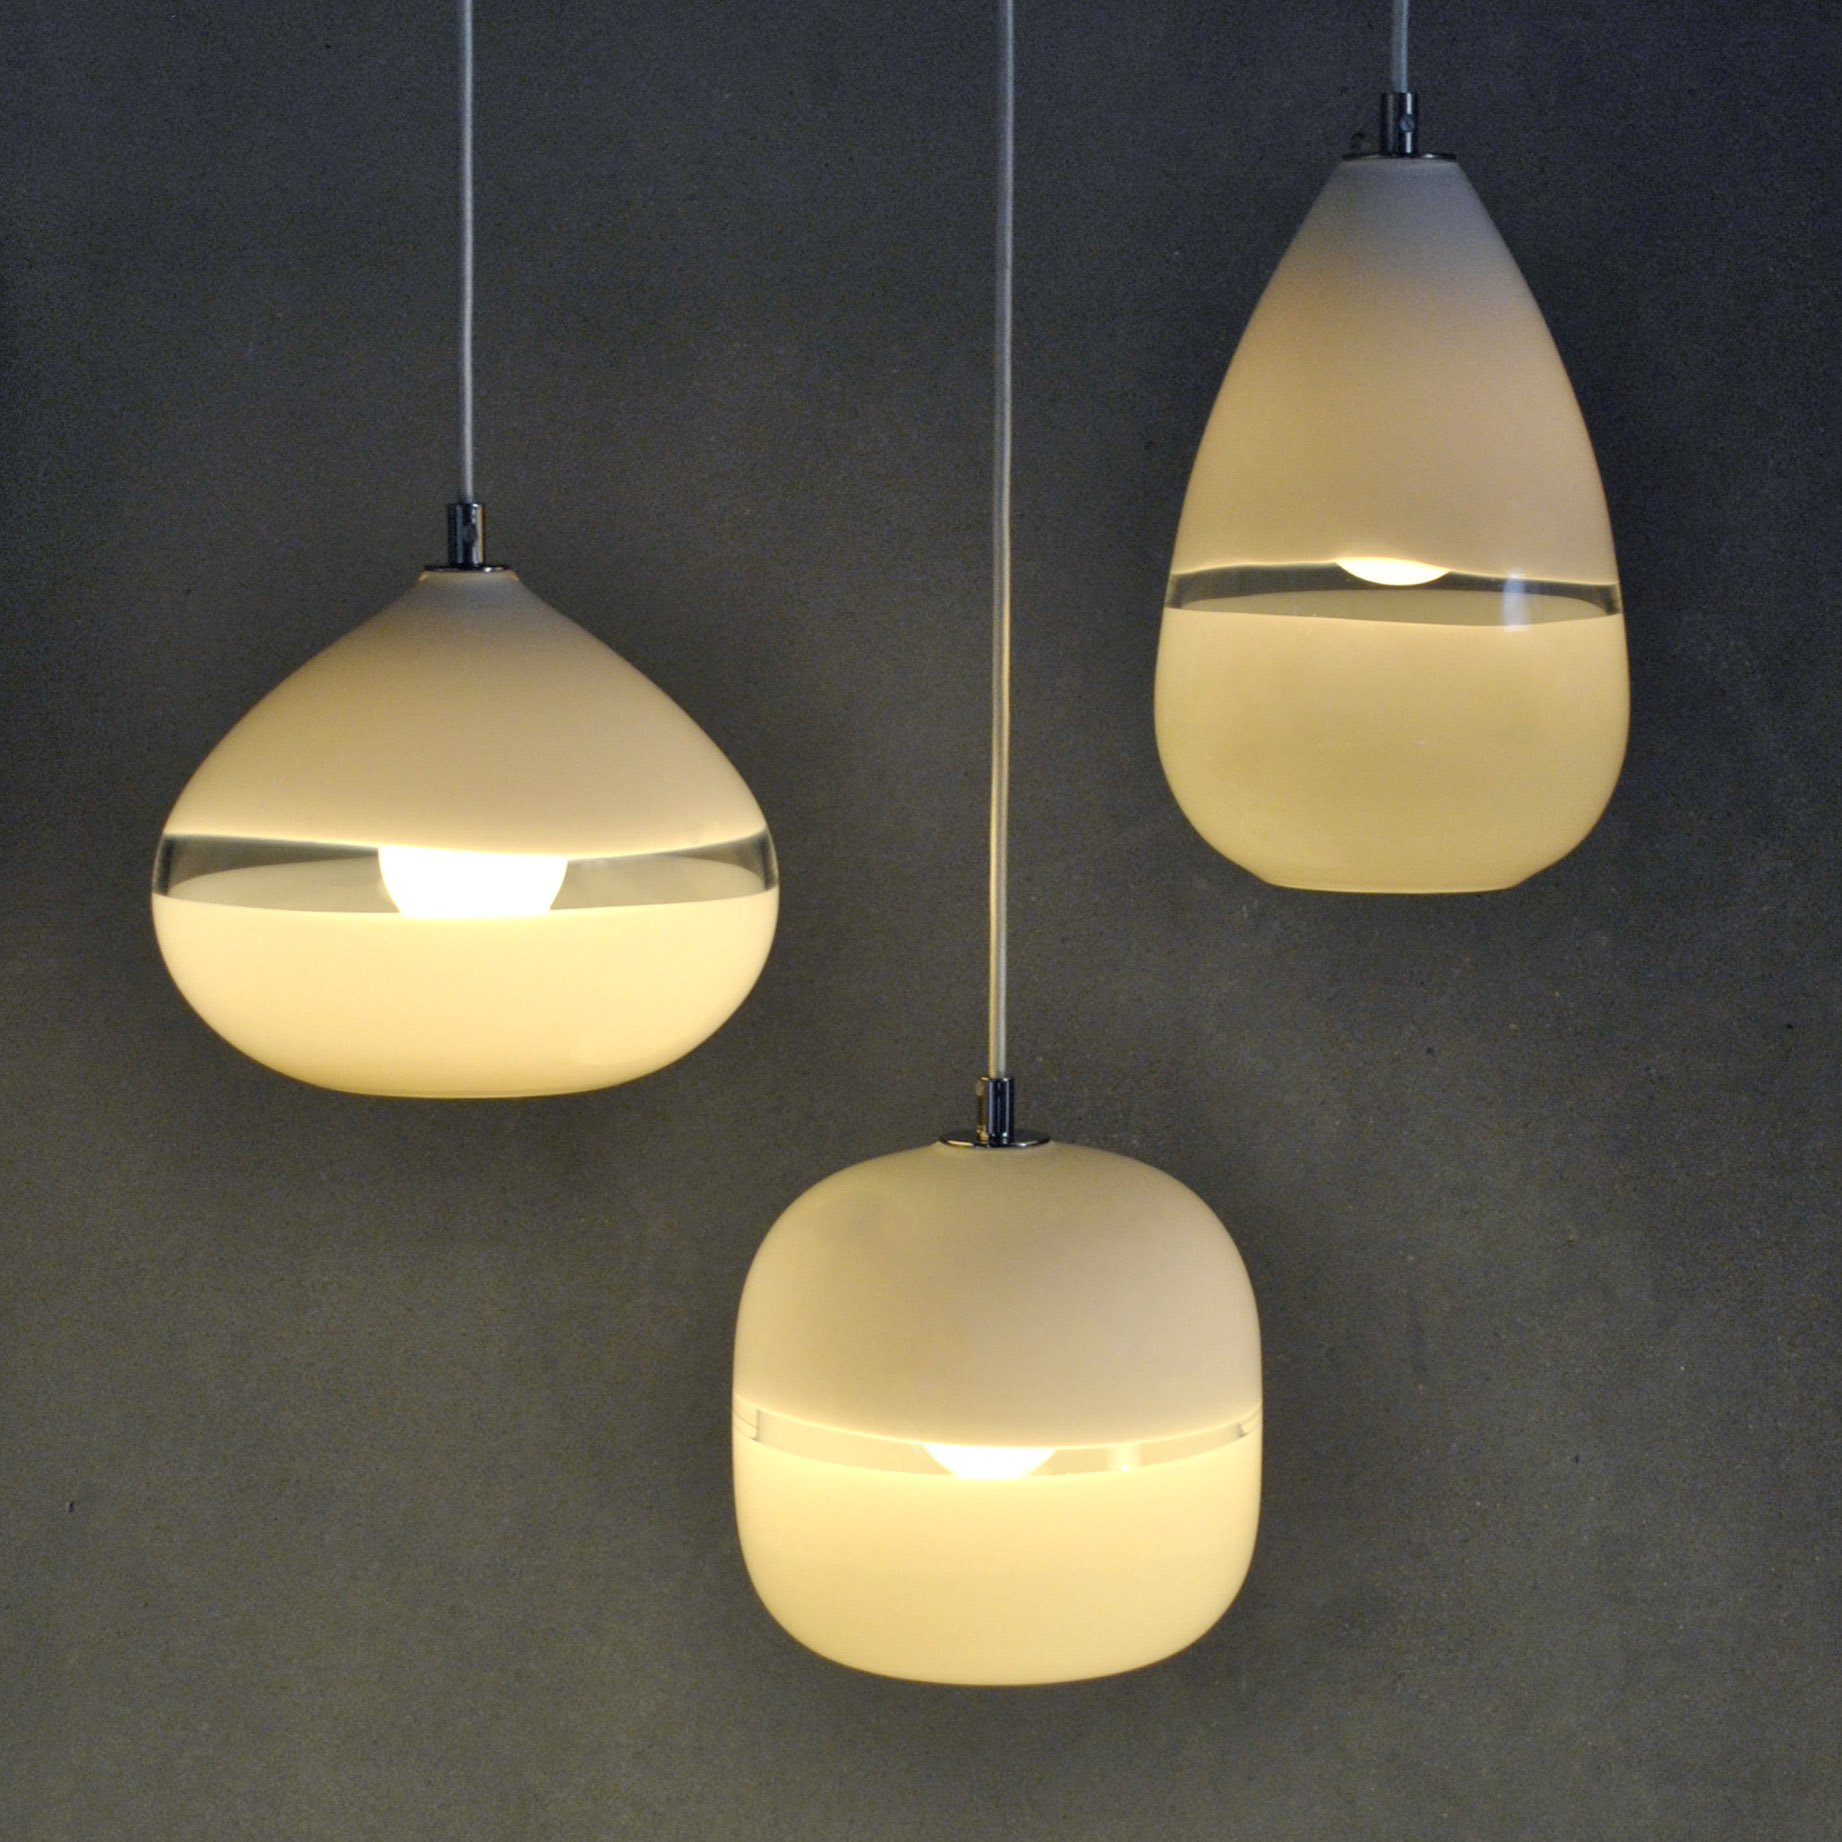 glass lighting trio by siemon and salazar